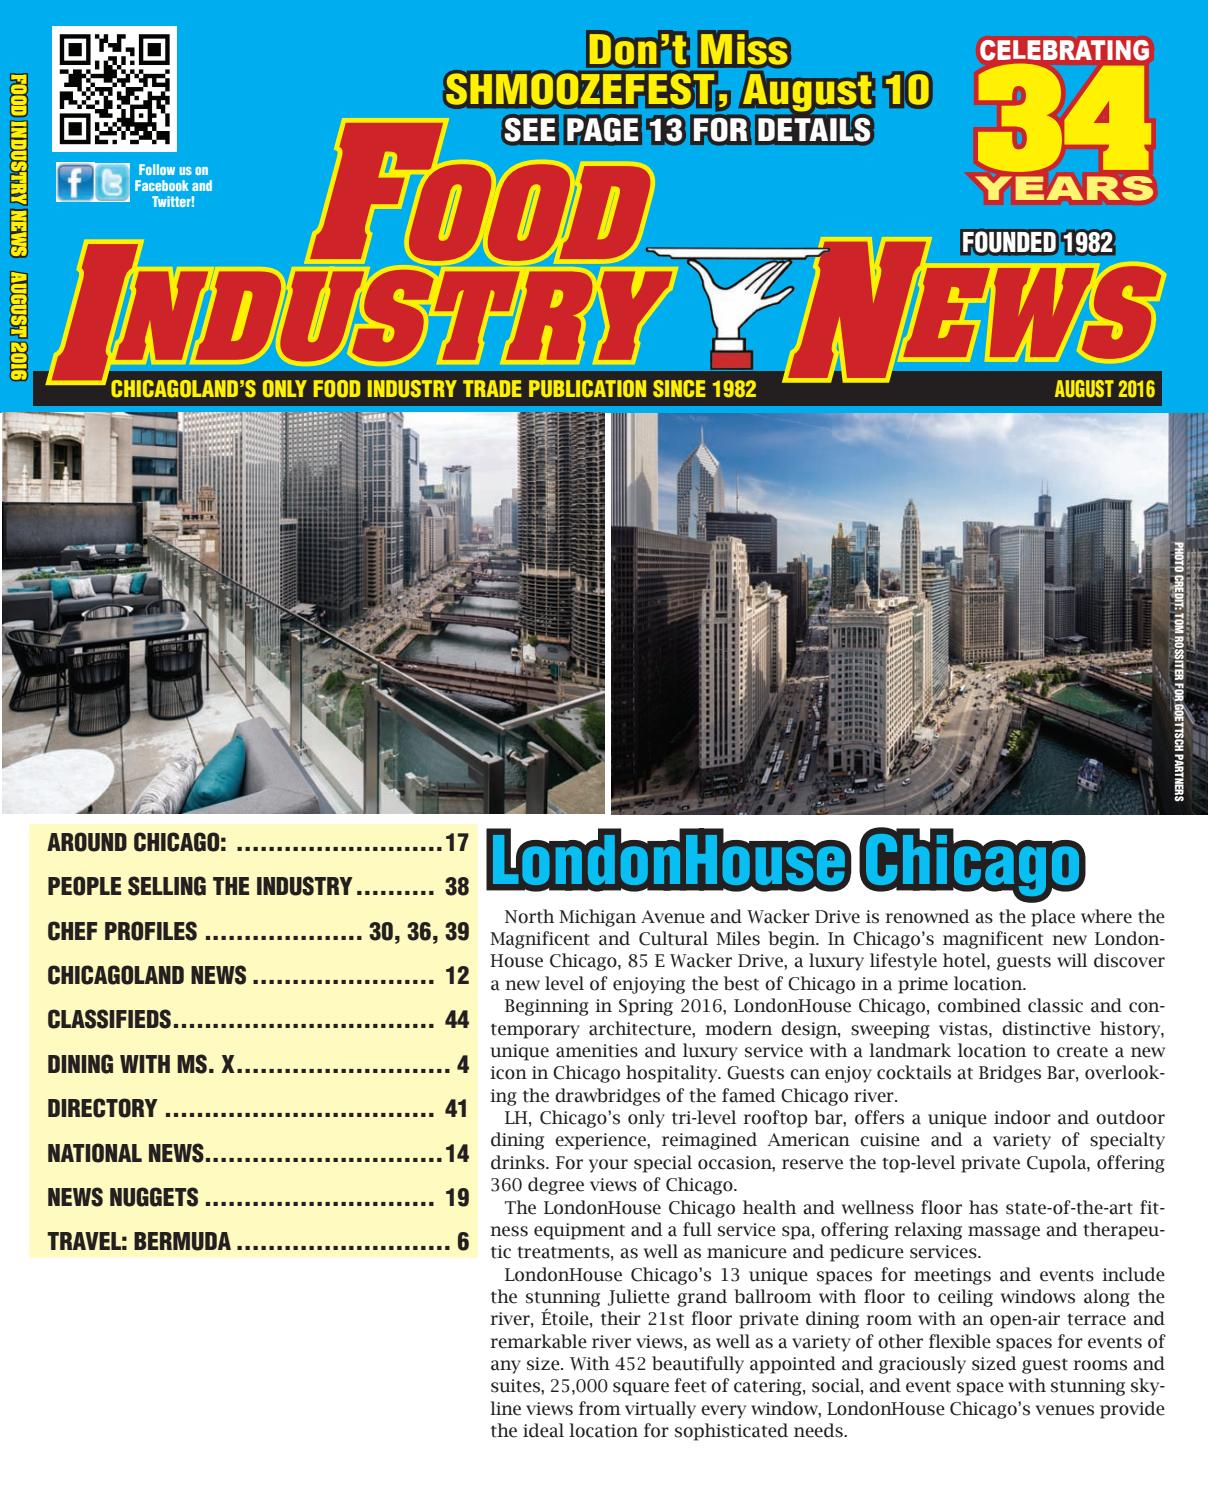 food industry news august 2016 web edition by foodindustrynews issuu